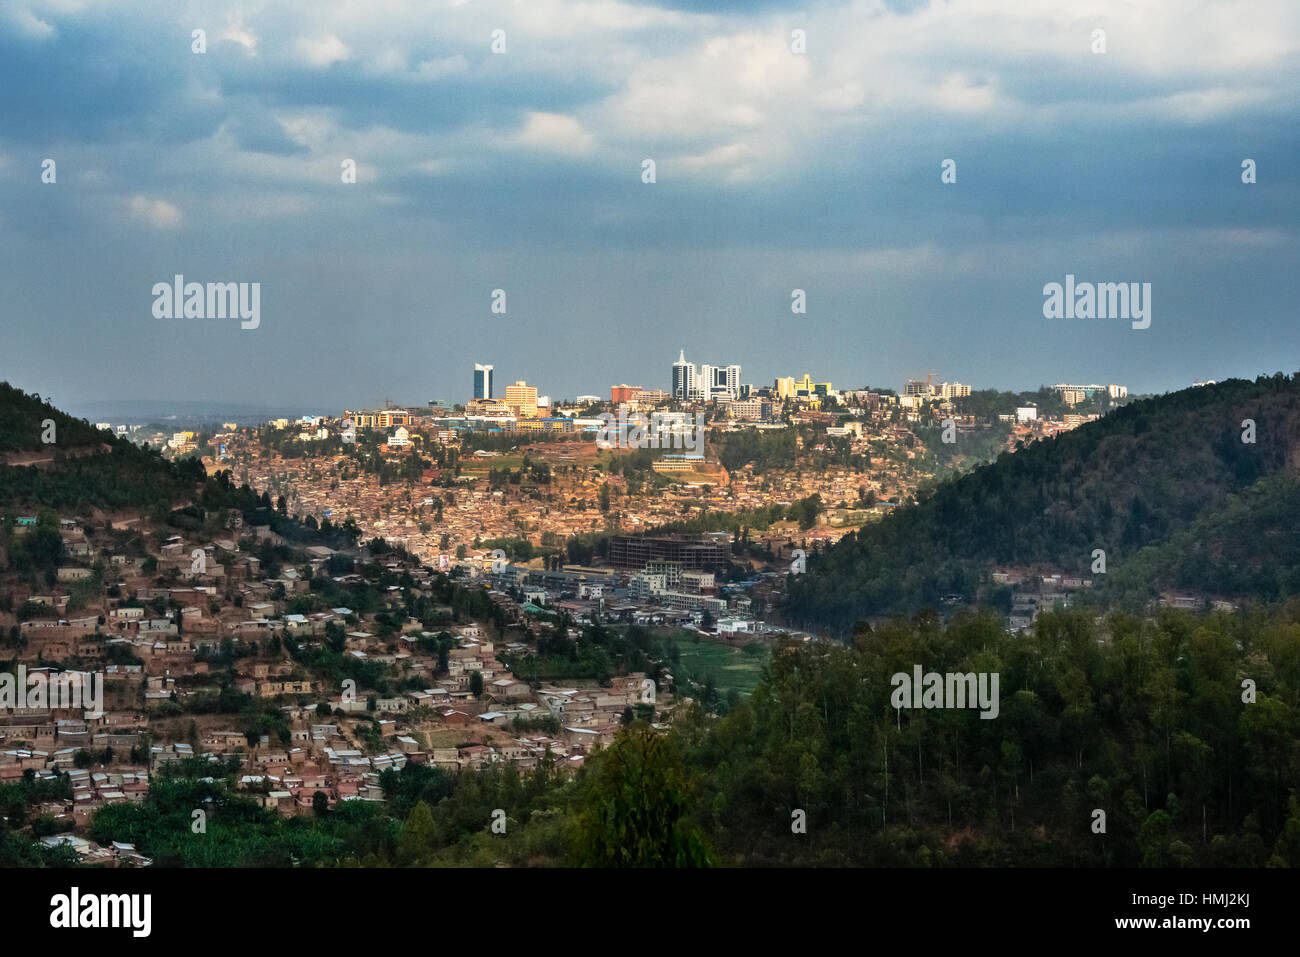 City of Kigali in the distance, Rwanda - Stock Image